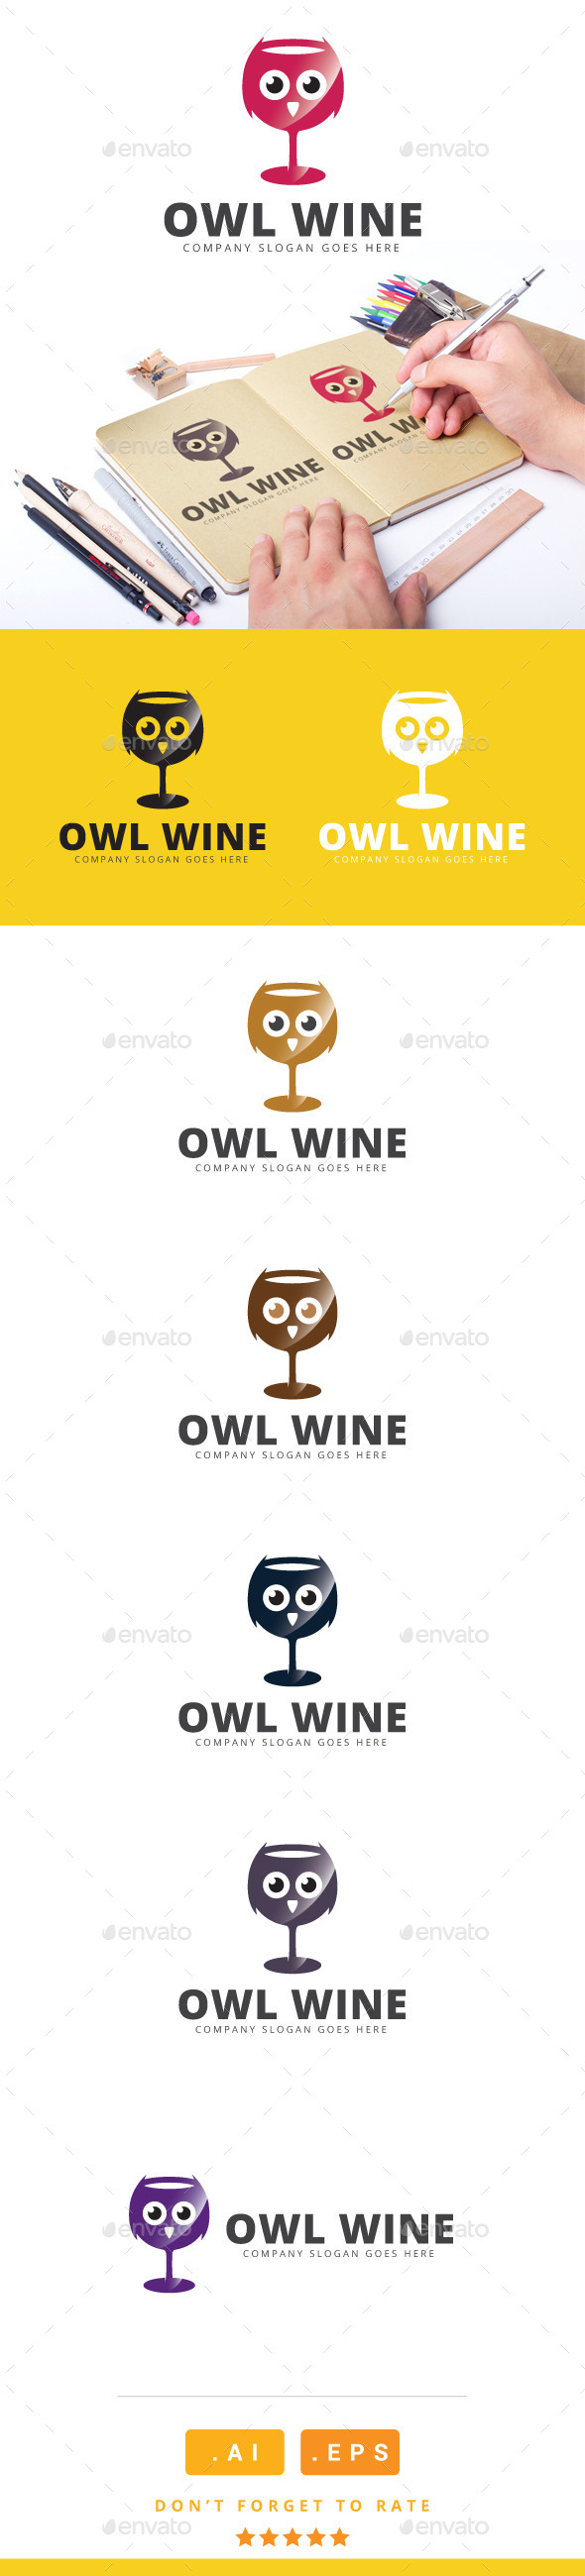 GraphicRiver Owl Wine Logo 11116261